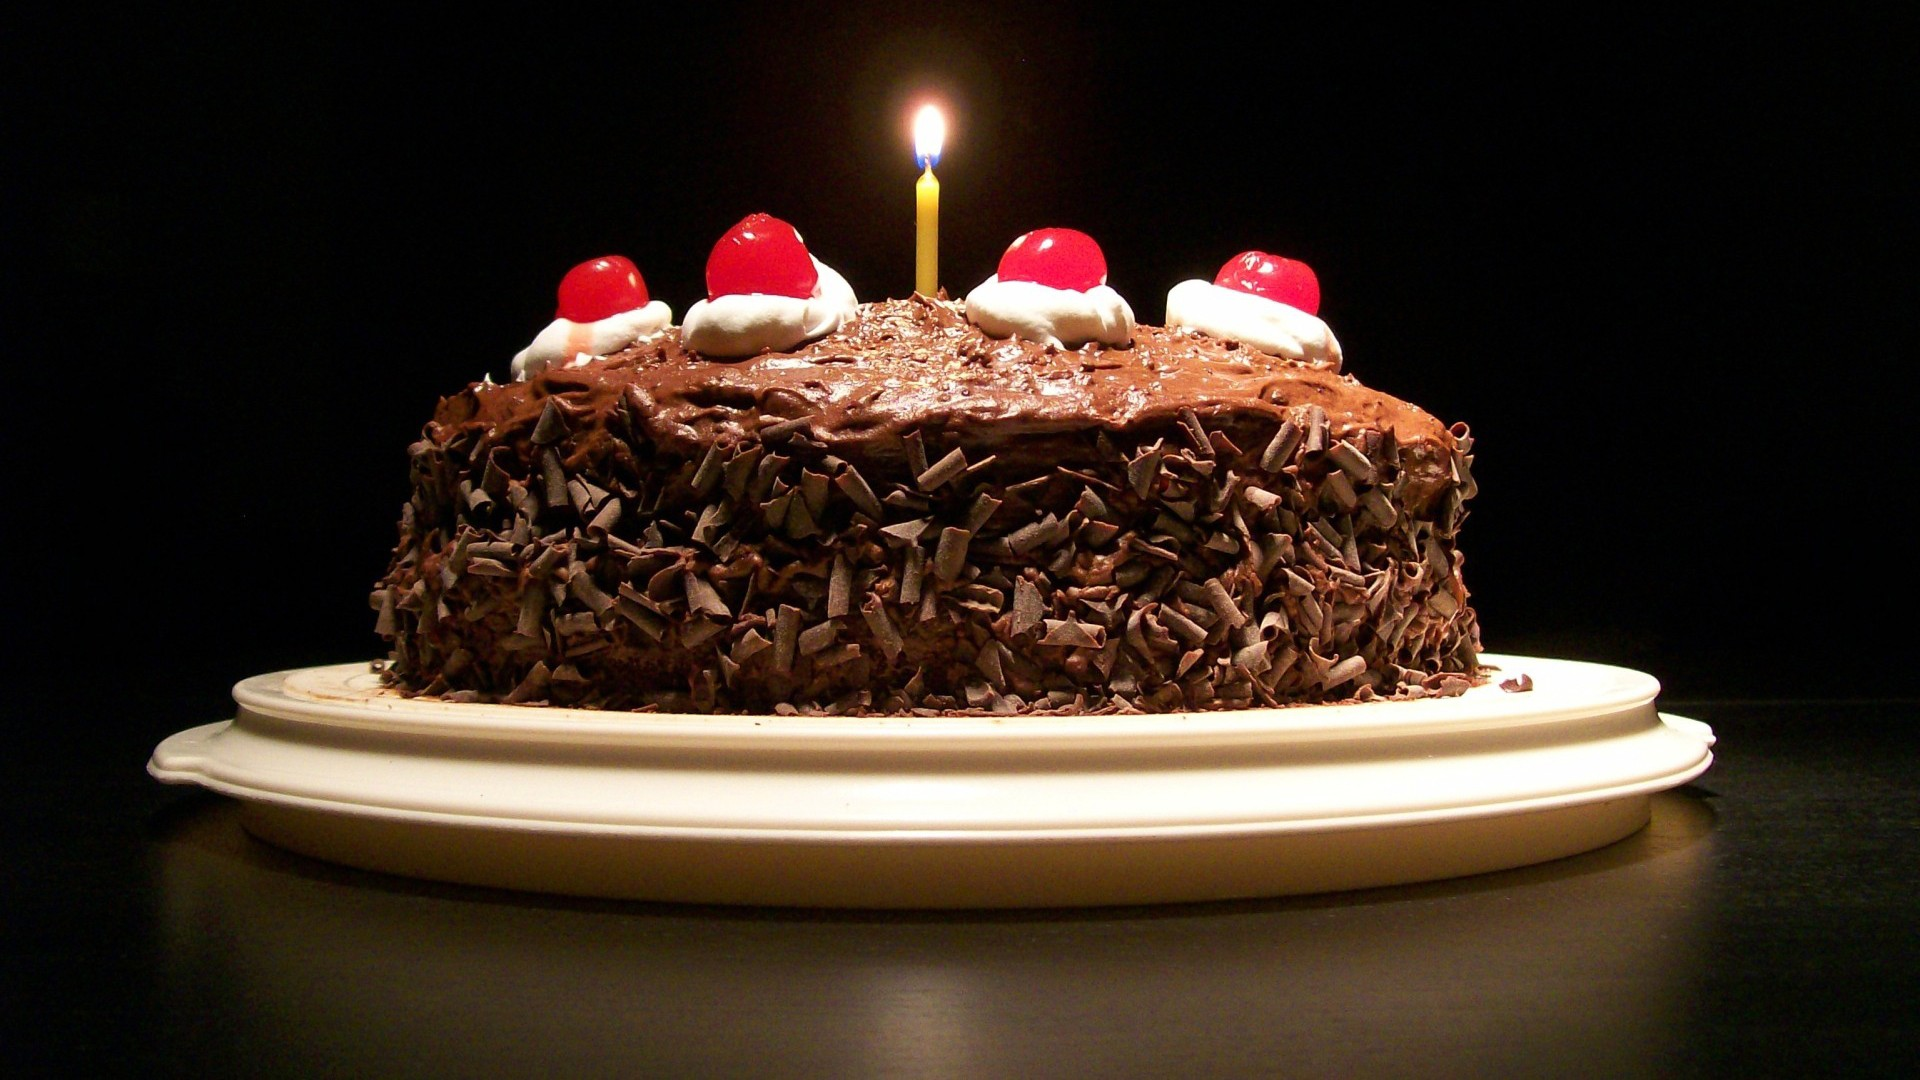 Cake Images Free Download Hd : Cake HD Wallpapers